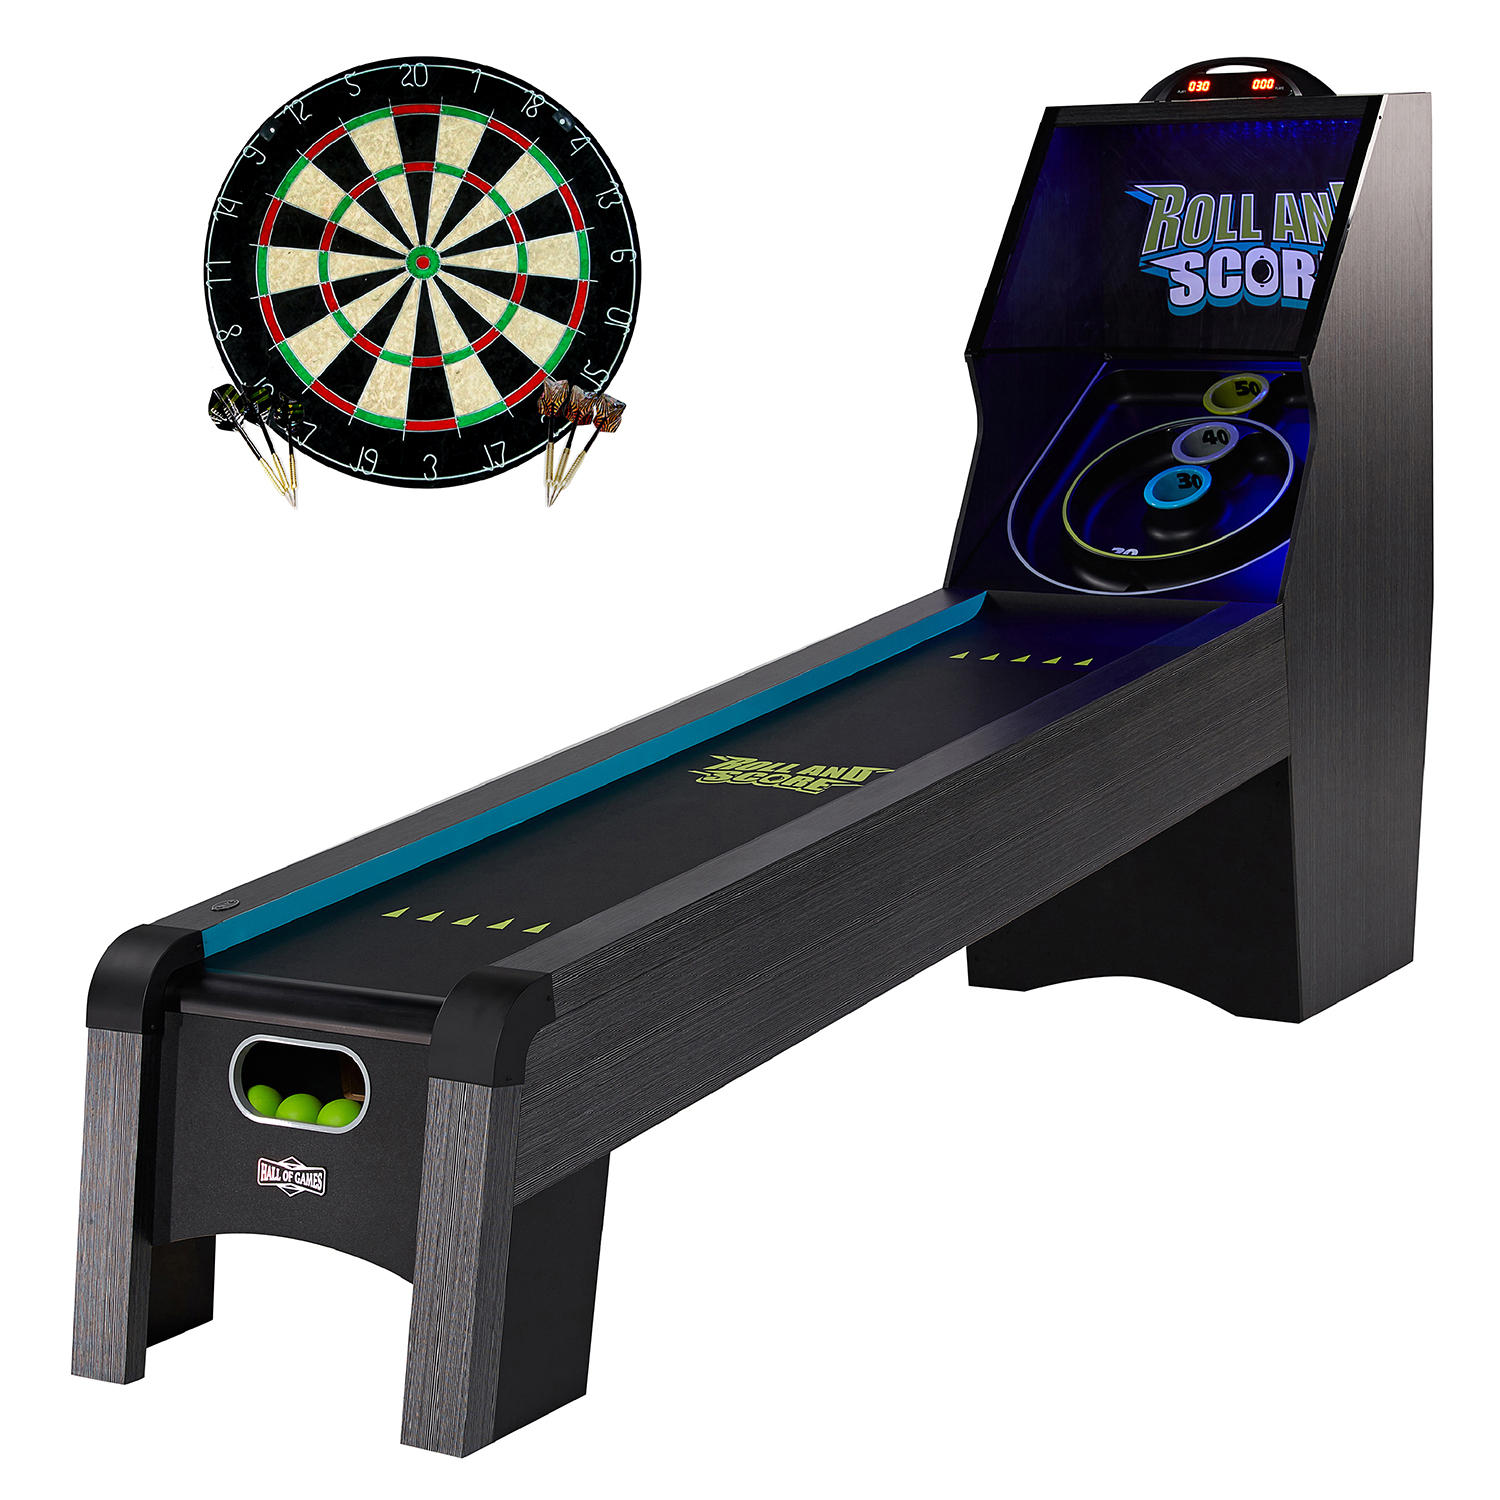 MD Sports Hall of Games 108″ Roll & Score Table with LED Lights and Bonus Dartboard